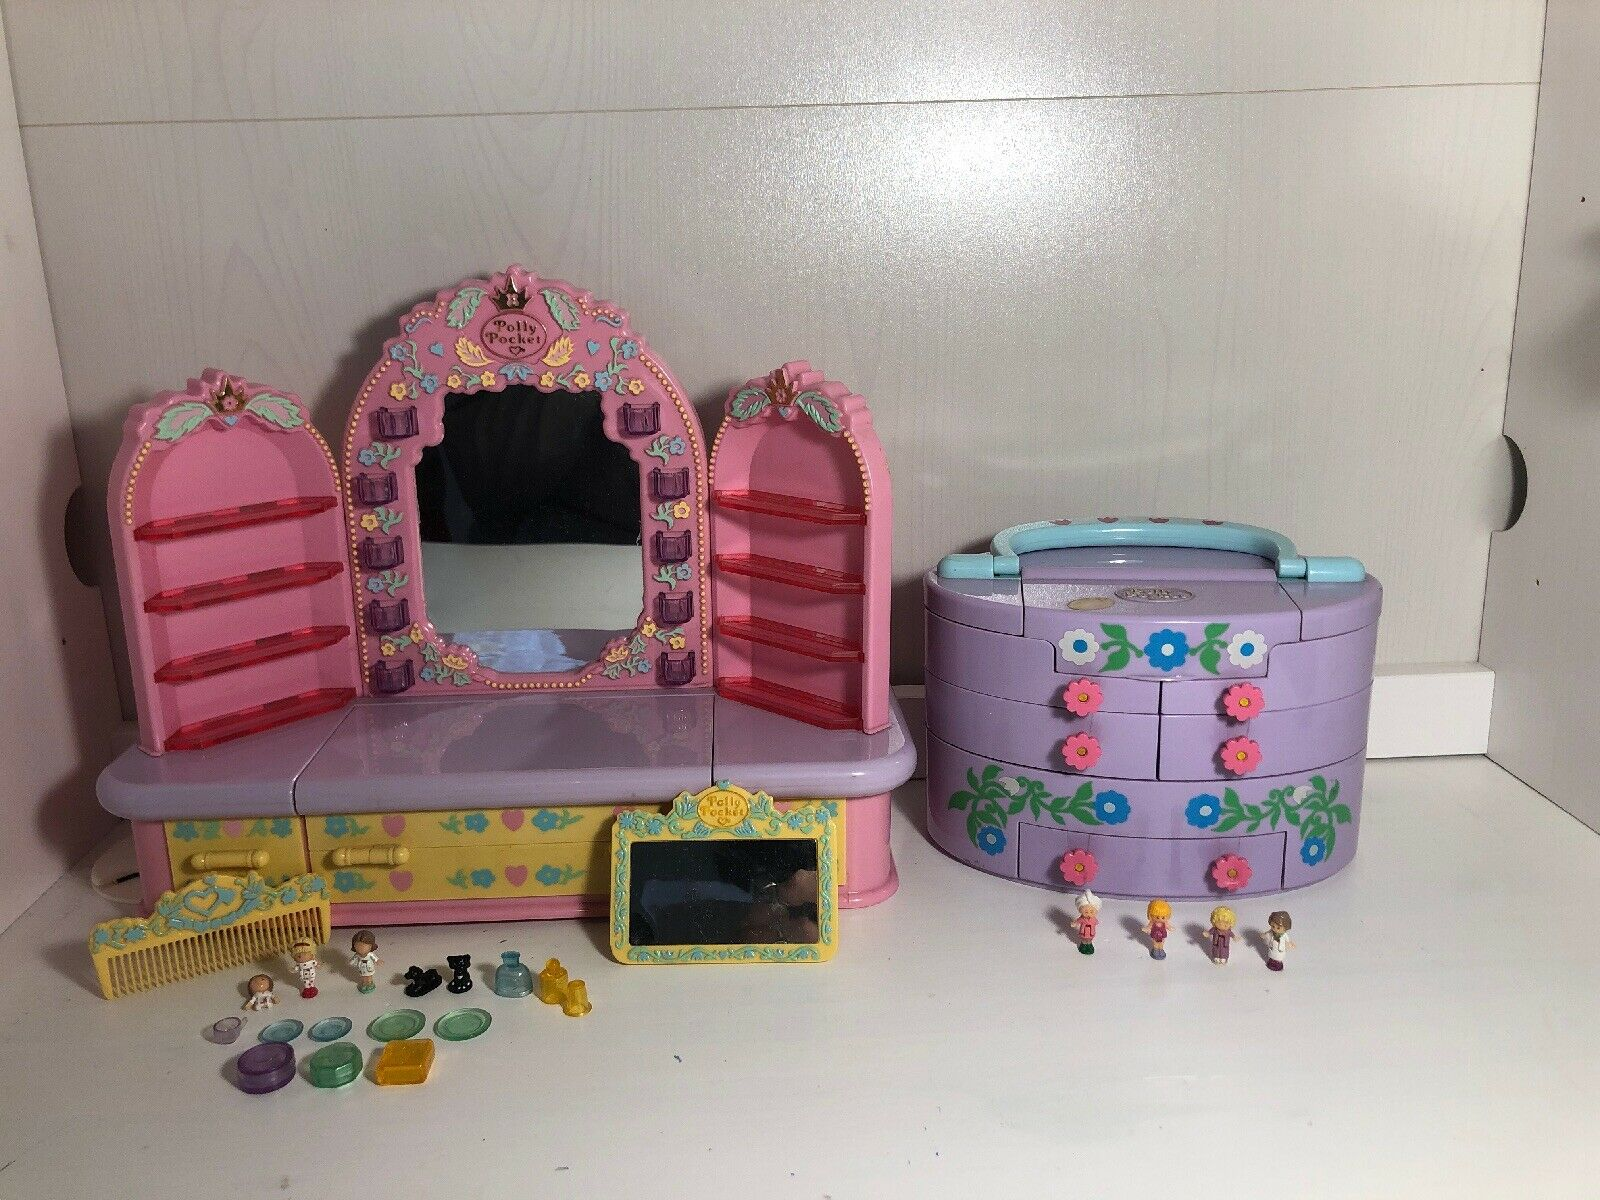 Polly Pocket Bundle Pijama Party Dressing Table Pullout Playhouse Variation